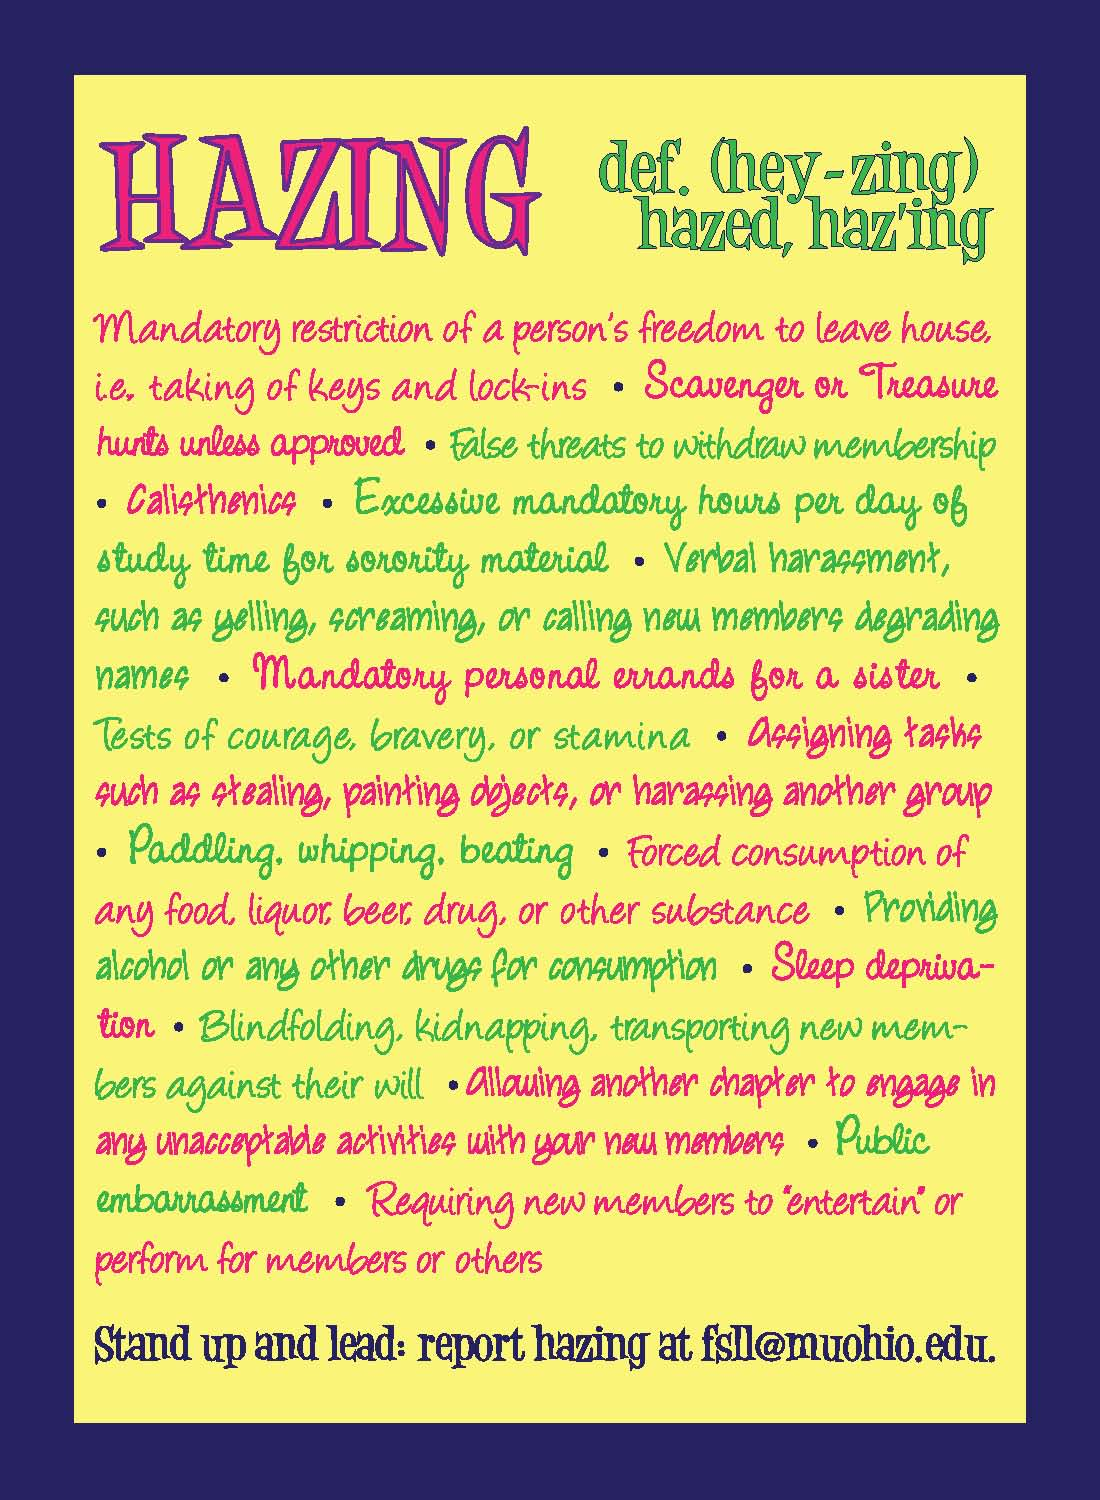 Definition of hazing for girls